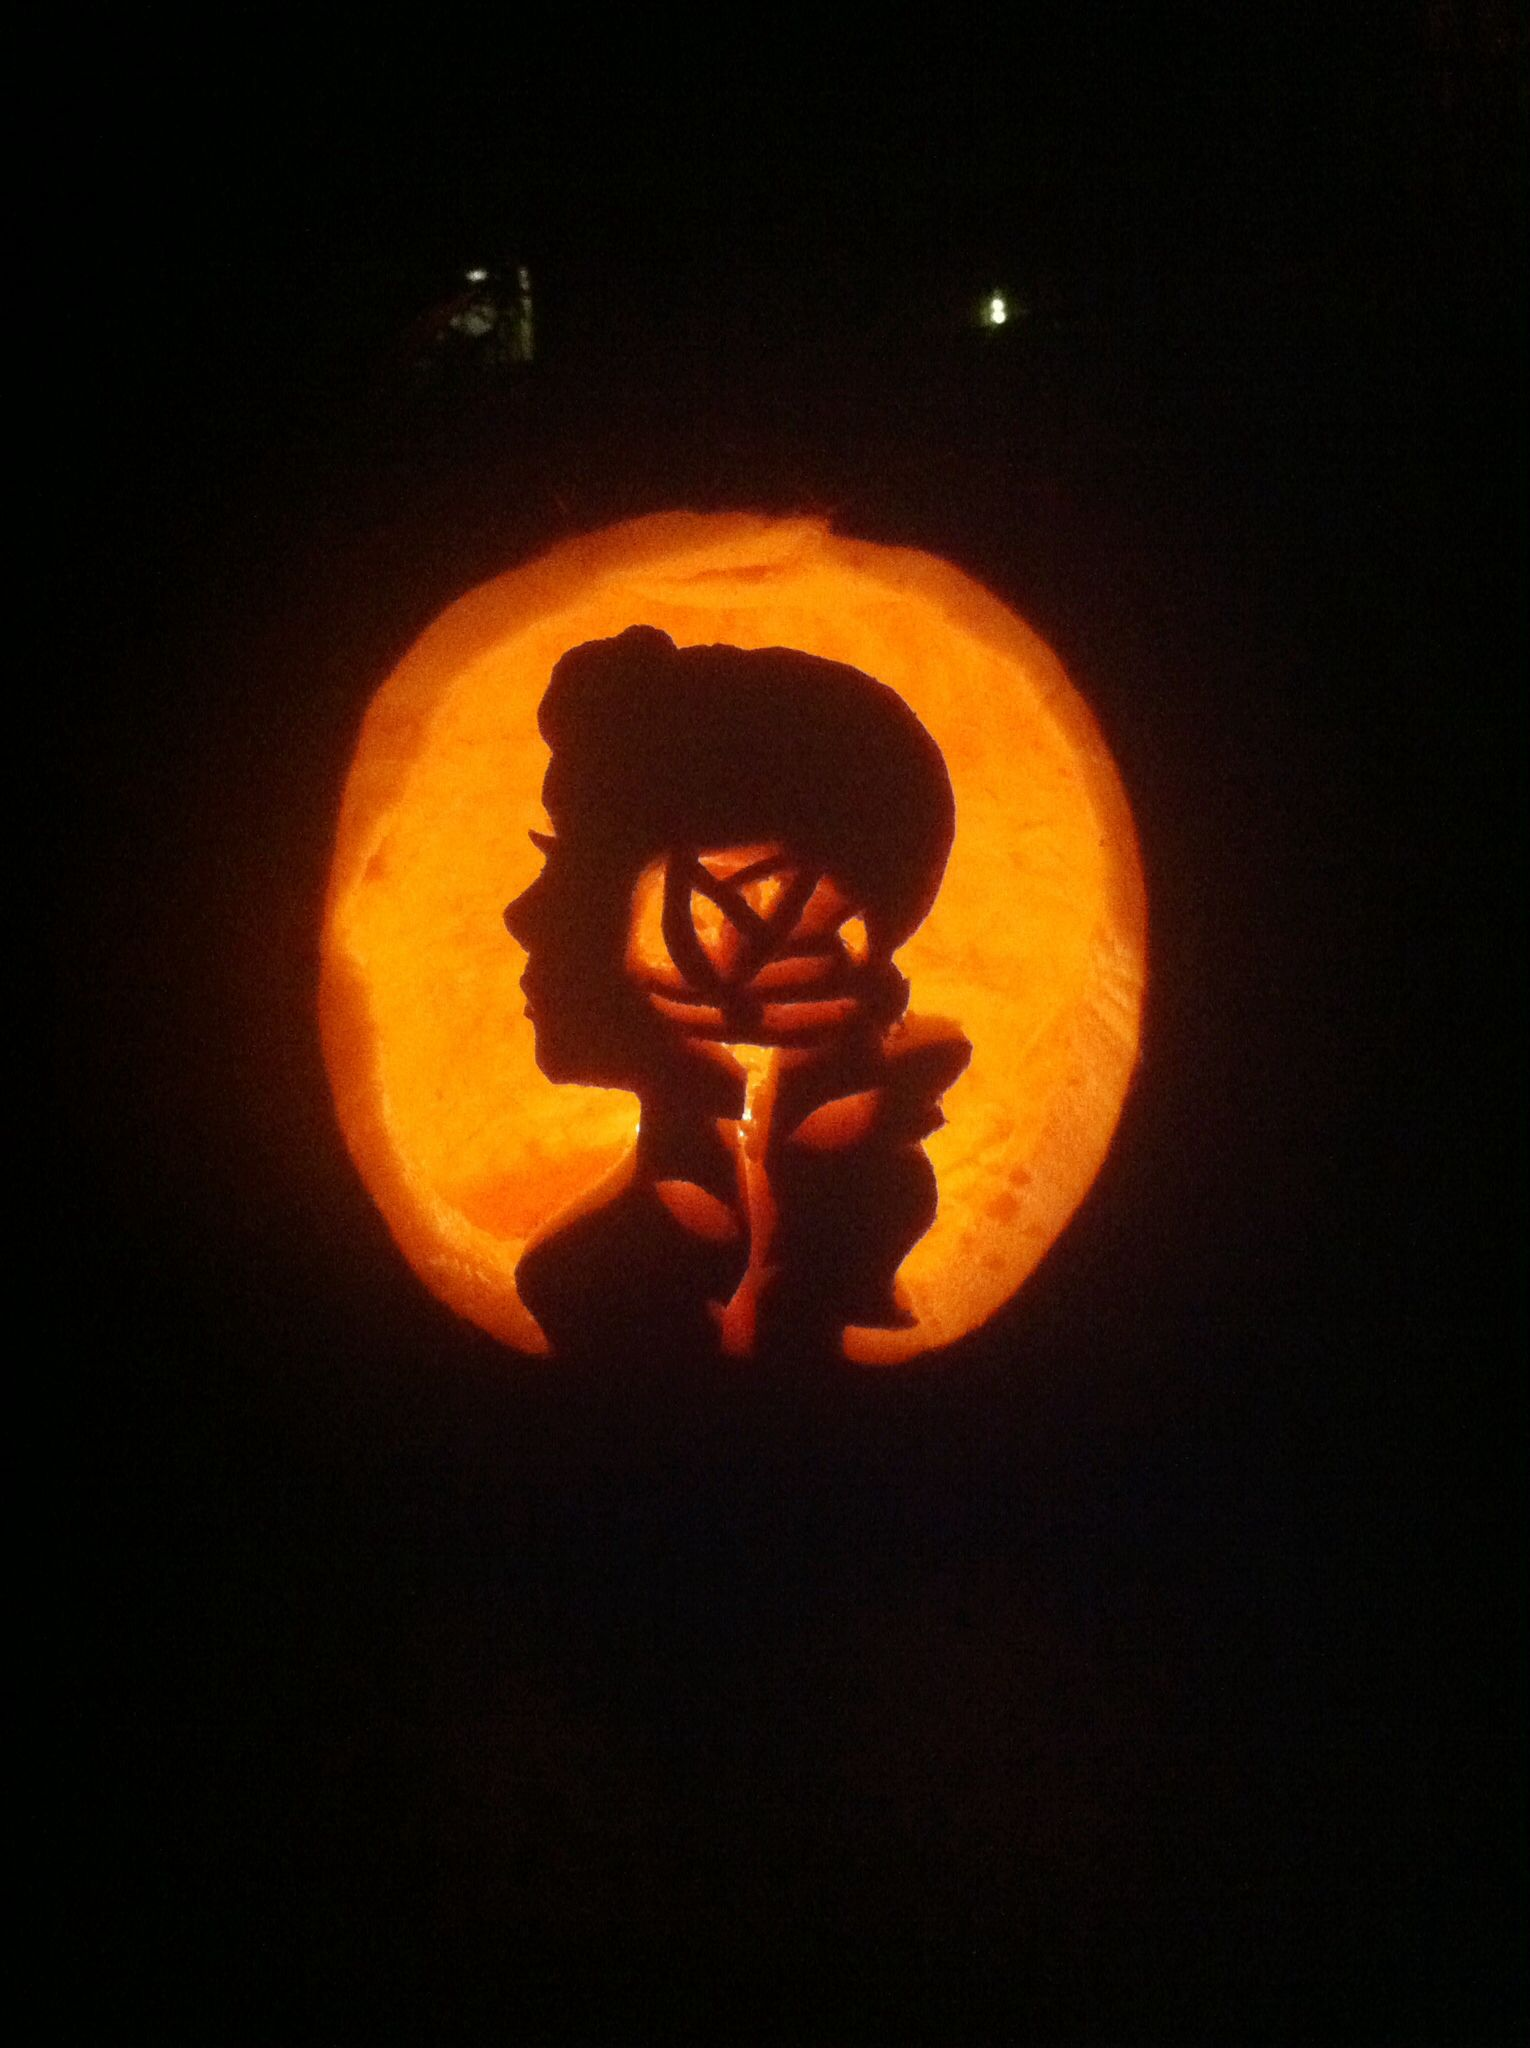 Wa walking dead pumpkin stencil - Beauty And The Beast Belle Pumpkin Carving With Rose In Silhouette